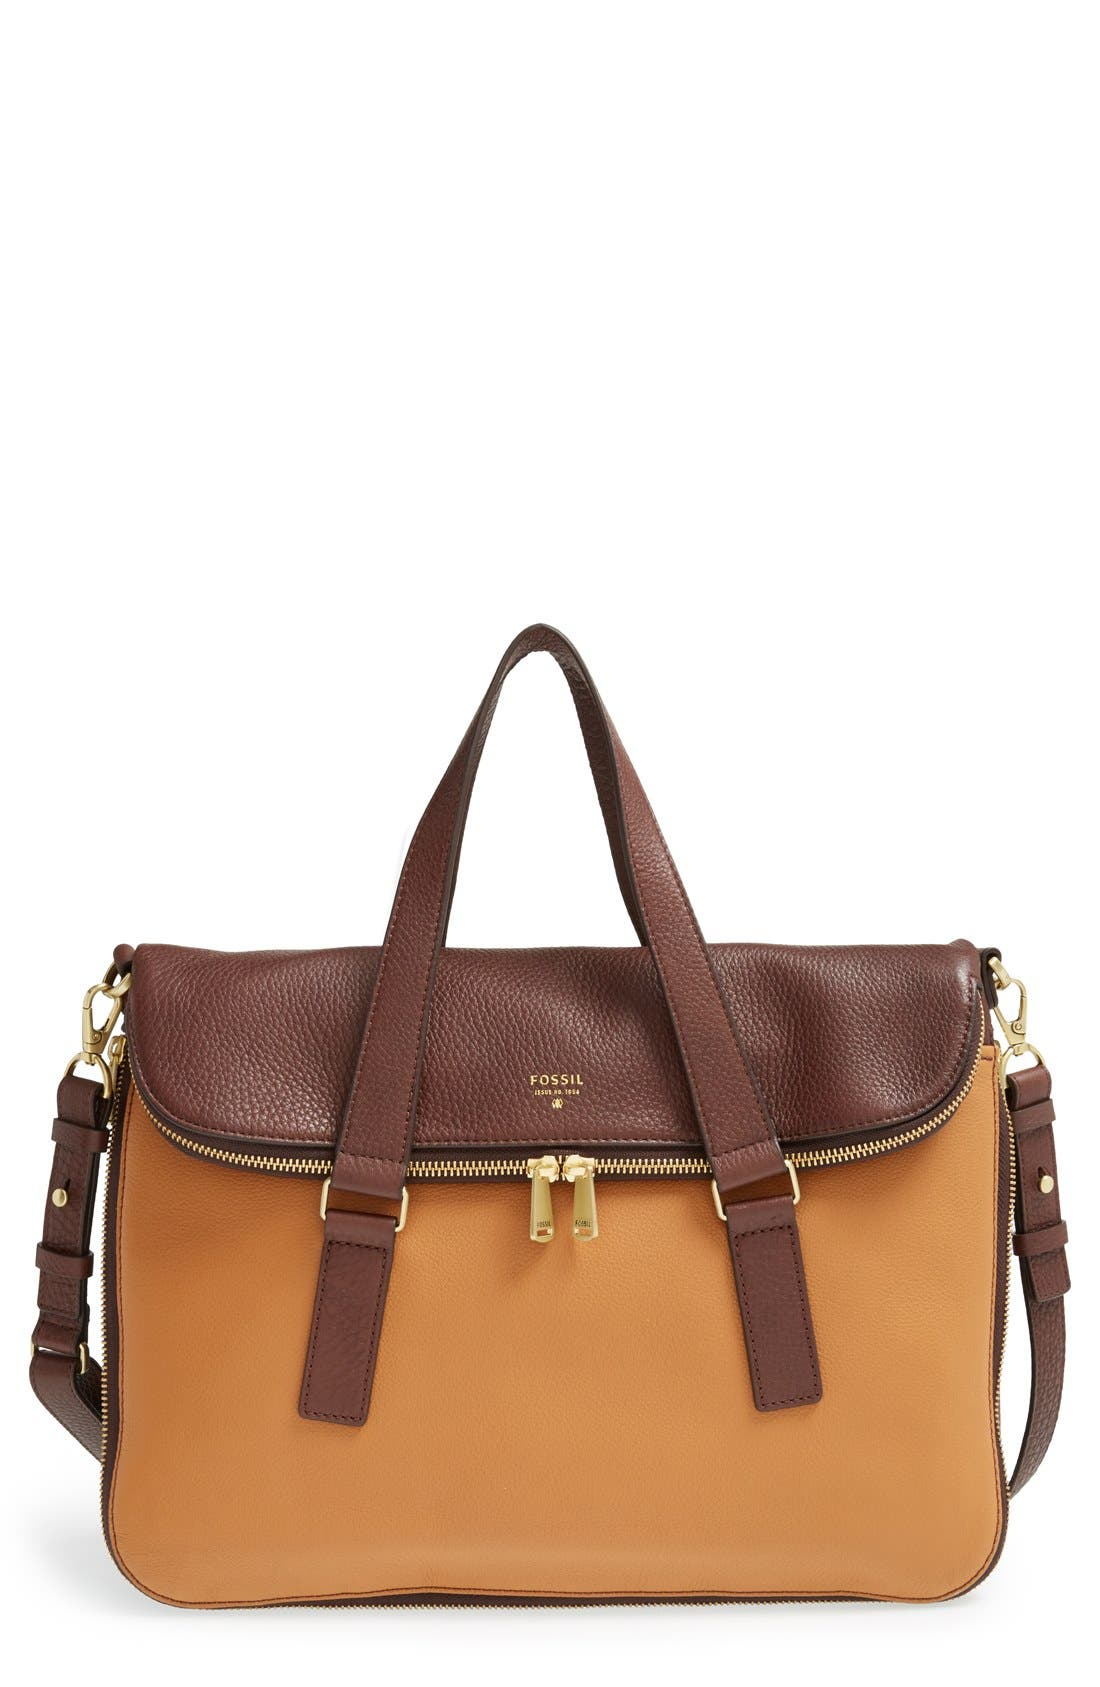 Alternate Image 1 Selected - Fossil 'Preston' Foldover Leather Tote (Online Only)